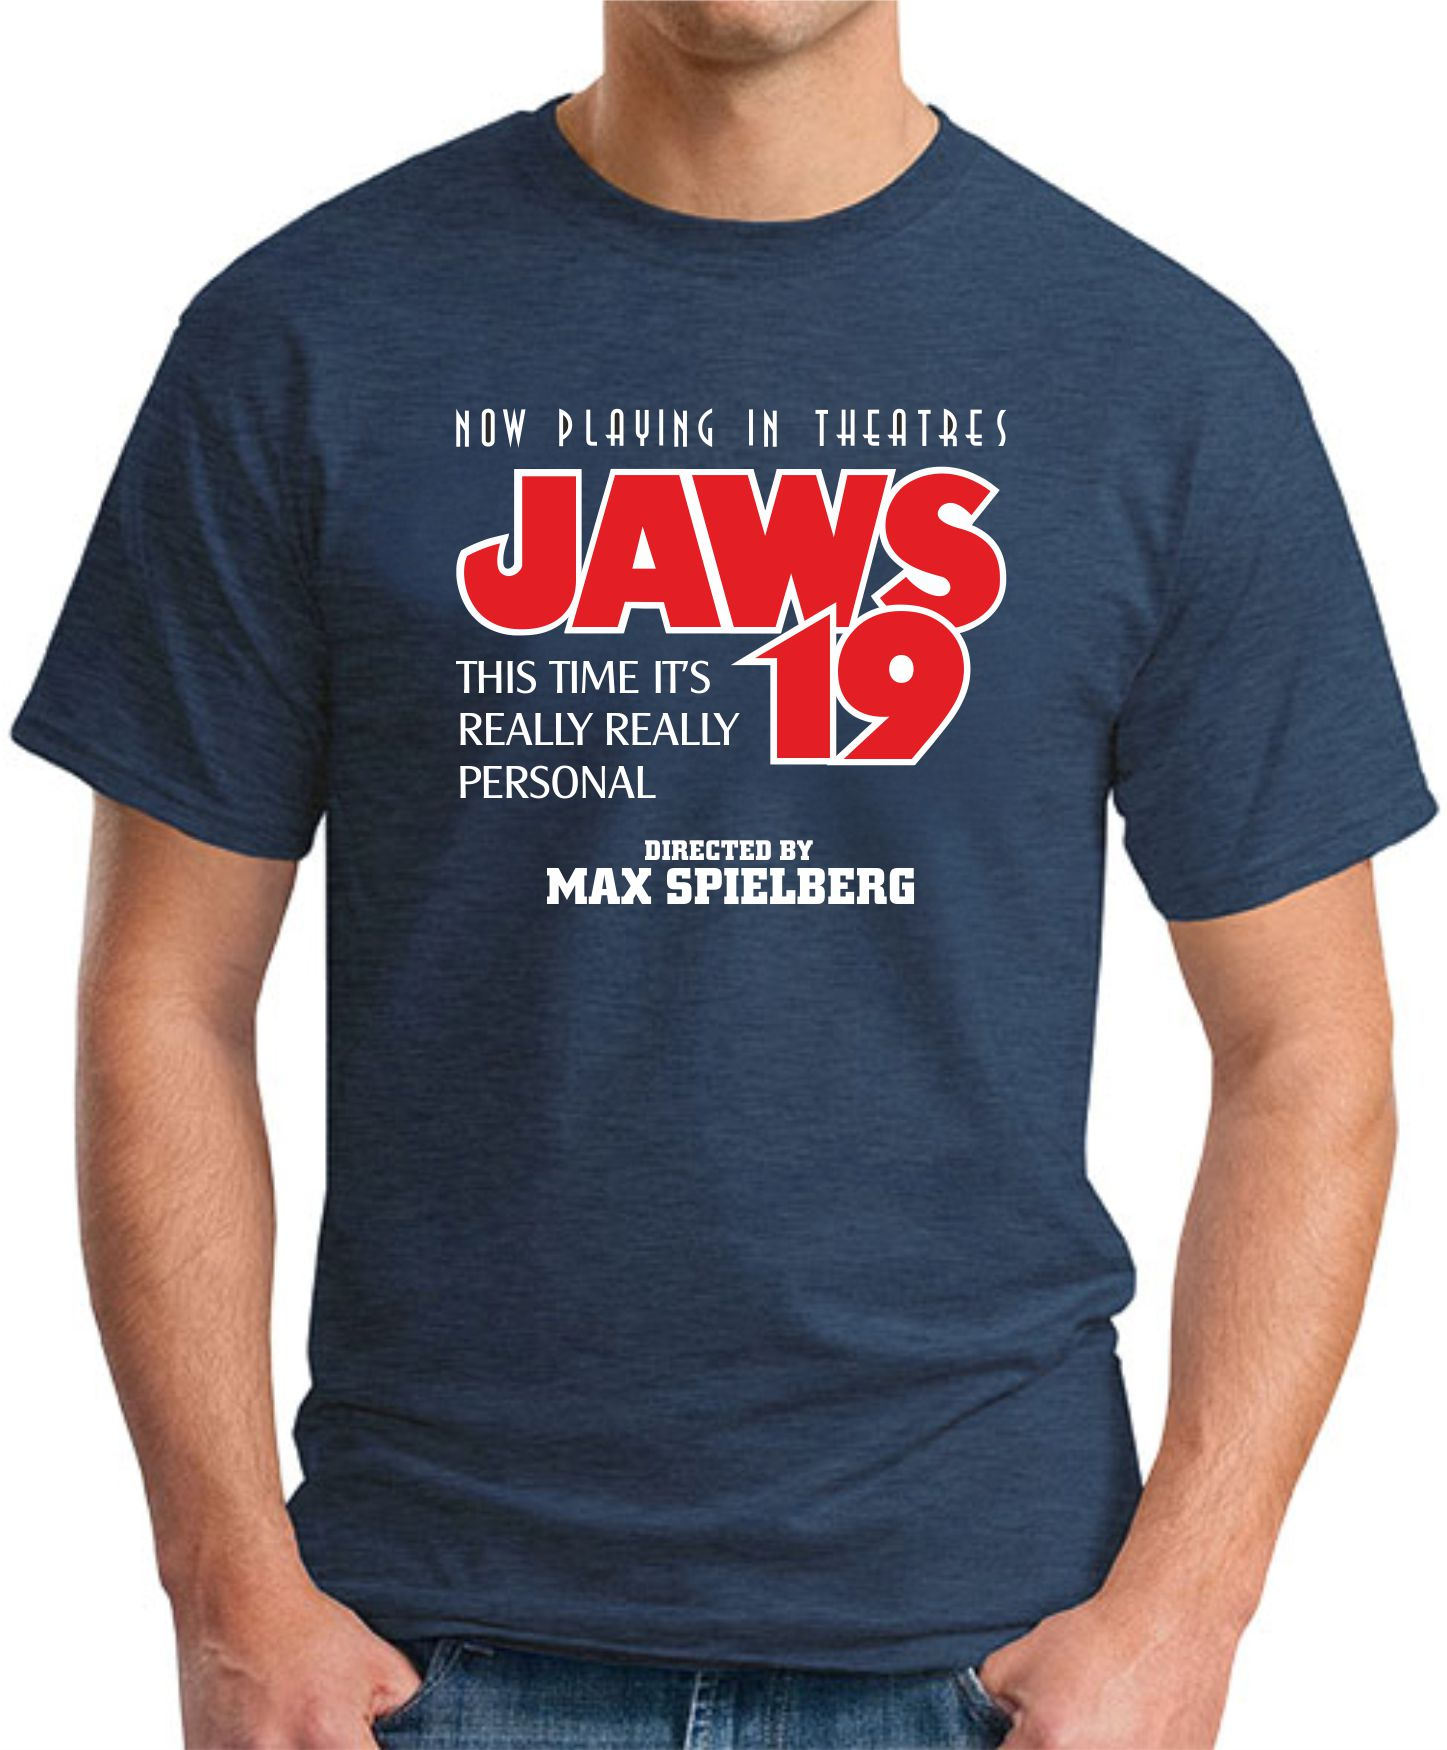 JAWS 19 navy